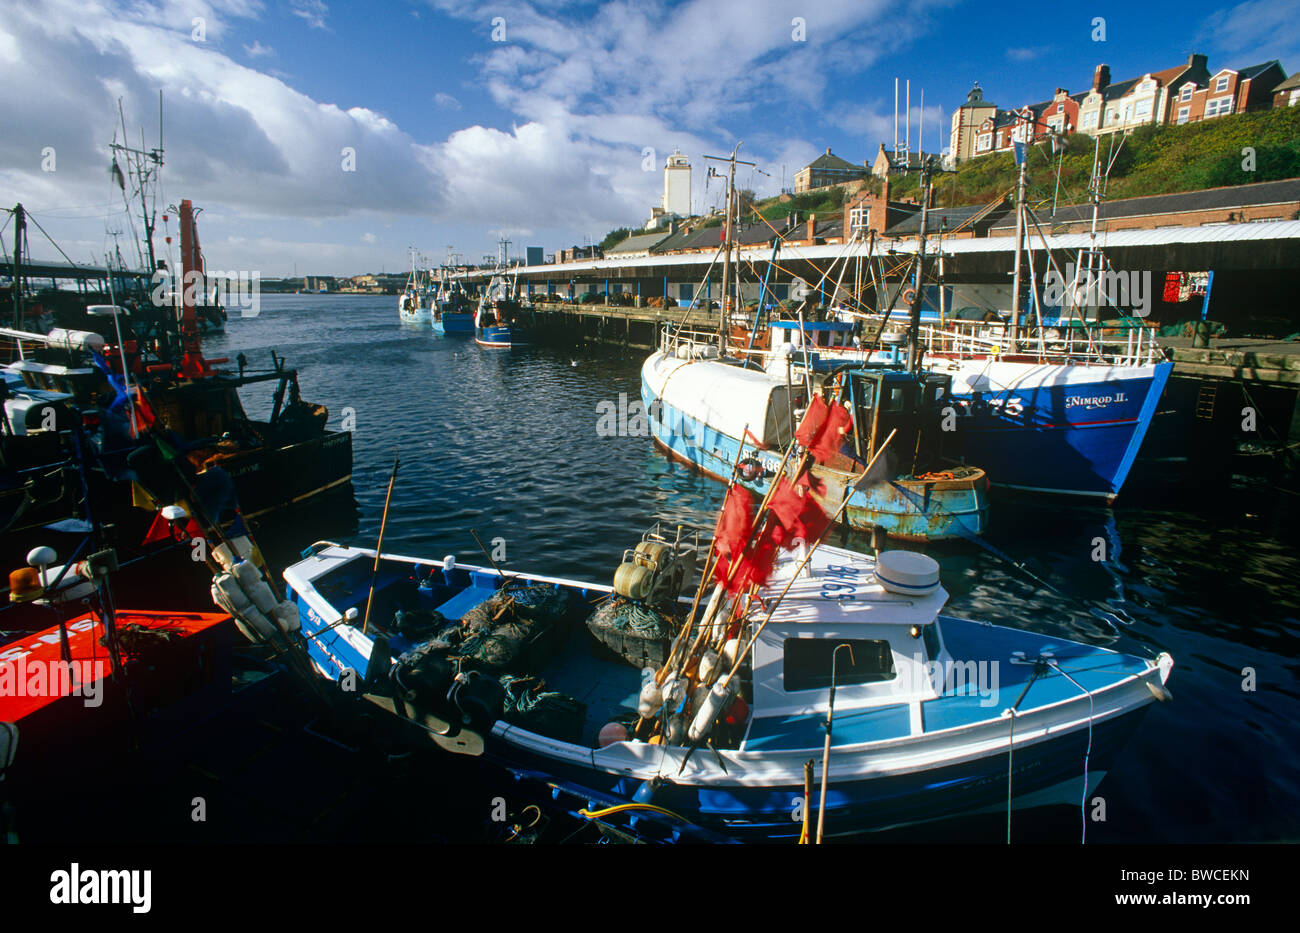 Fishing boats at North Shields Fish Quay, Tyne and Wear - Stock Image